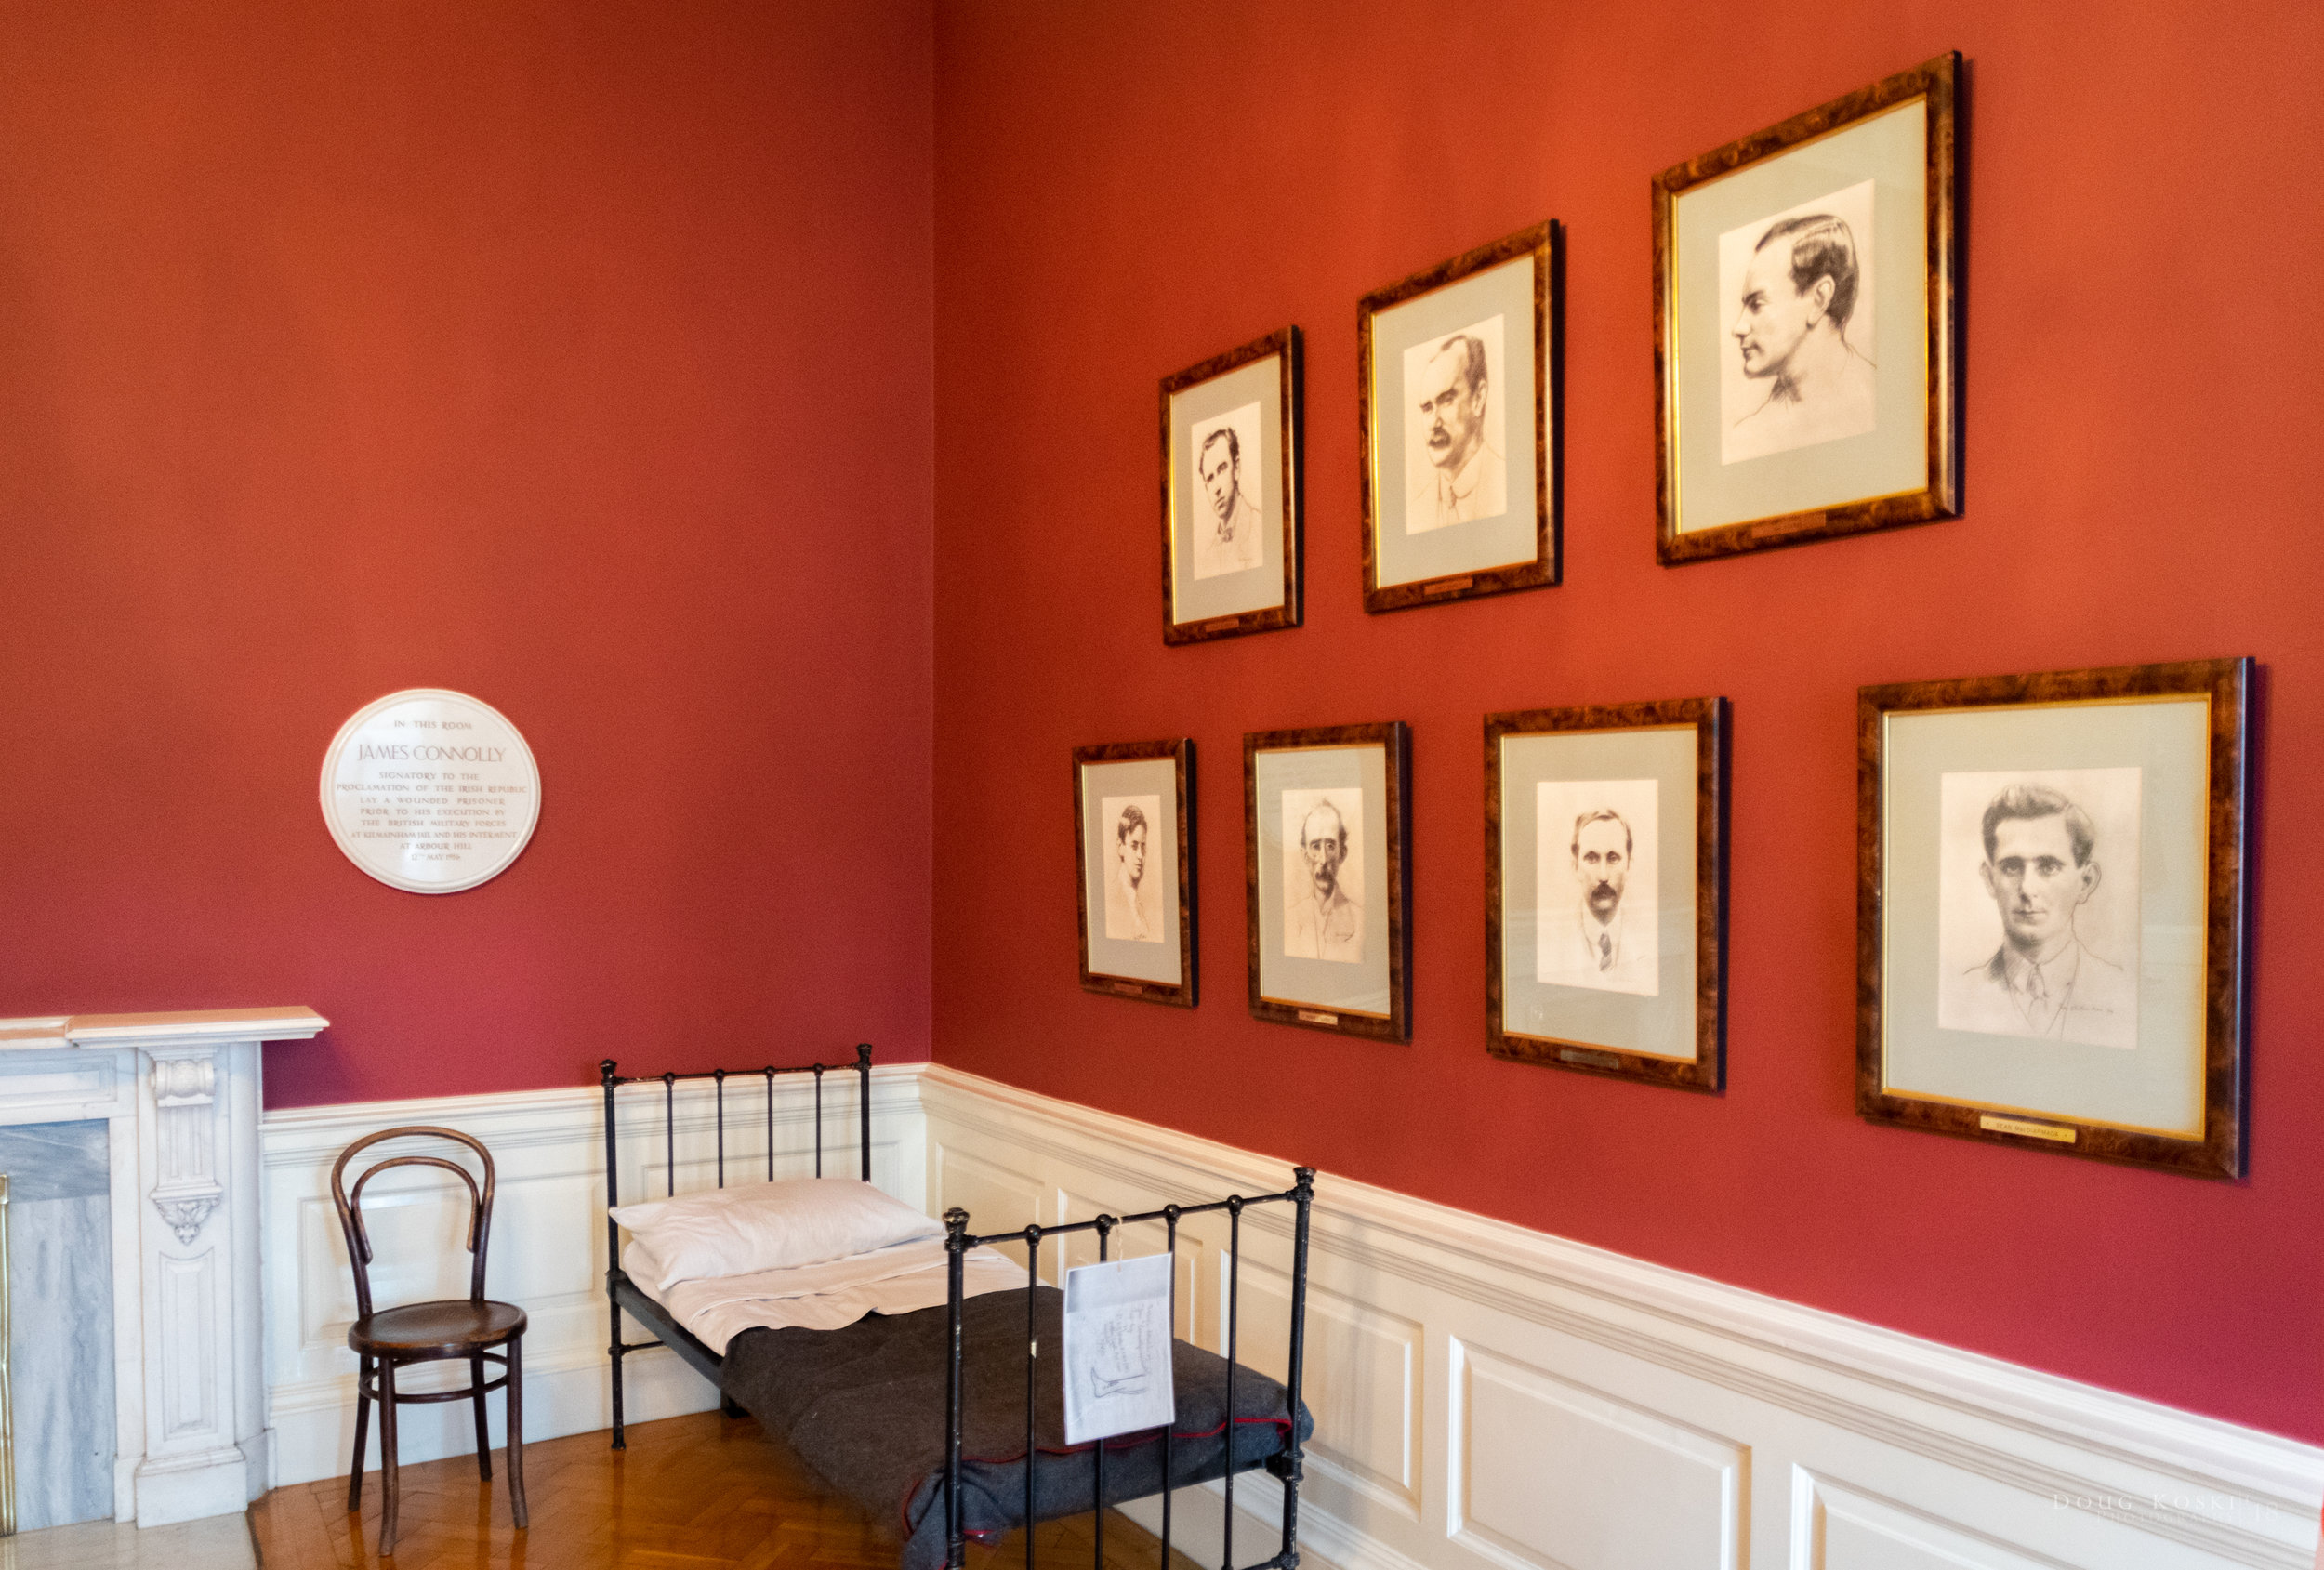 James Connolly - This is the room where James Connolly was held for recovery before being executed. He and the other executed leaders of the Easter Uprising are in the photos on the wall.